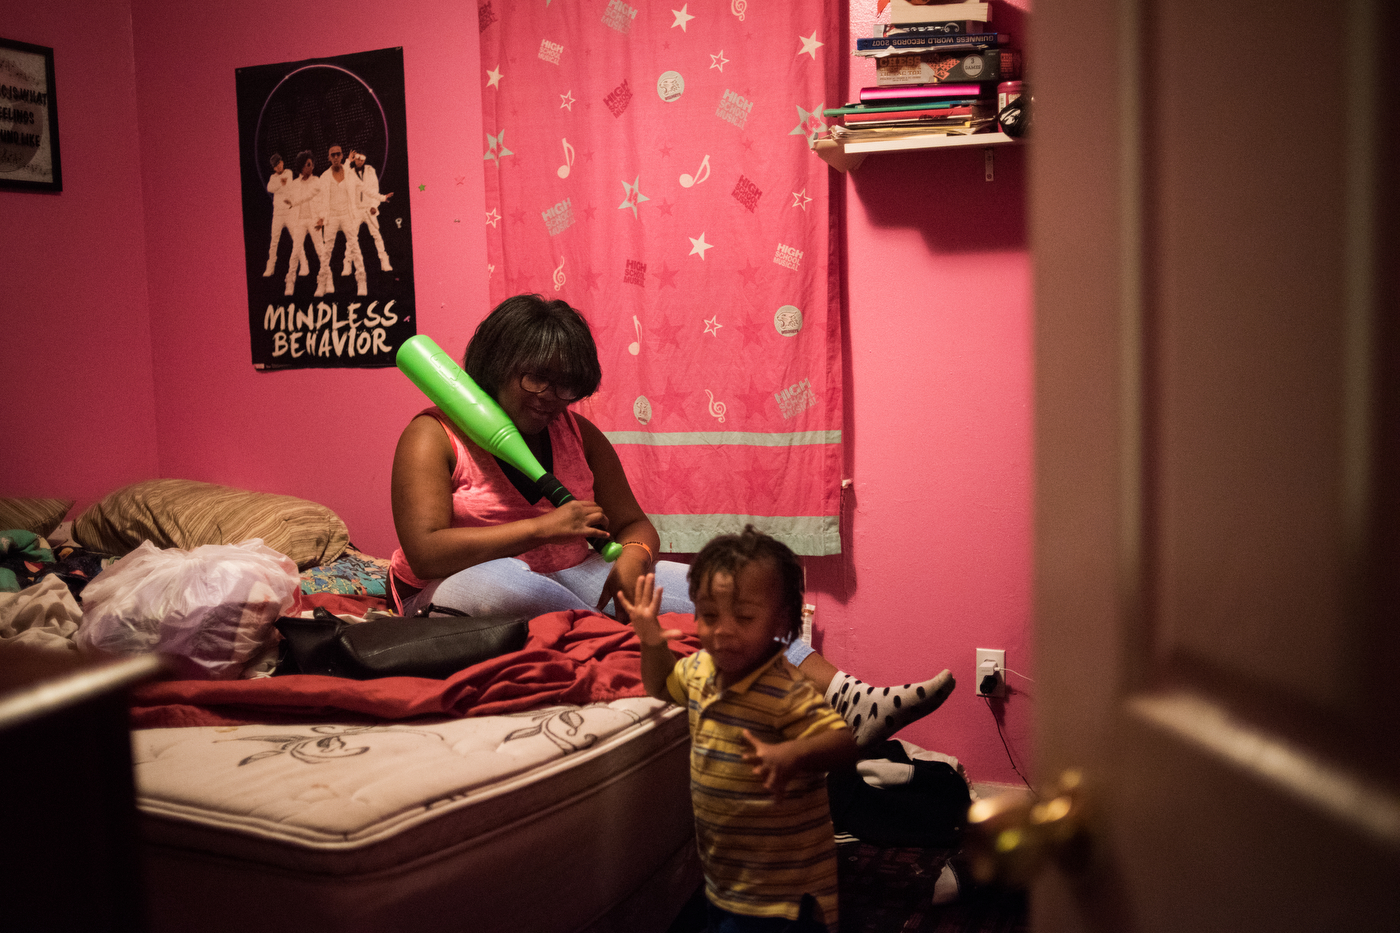 """Davyin Morris, 2, plays with his aunt Abreyale Carter, 11, in the Carter family home. Morris' mom told him to go fight Abreyale after she took one of his Capri Sun packs, saying """"I told you, if someone takes something of yours, you have to fight them."""